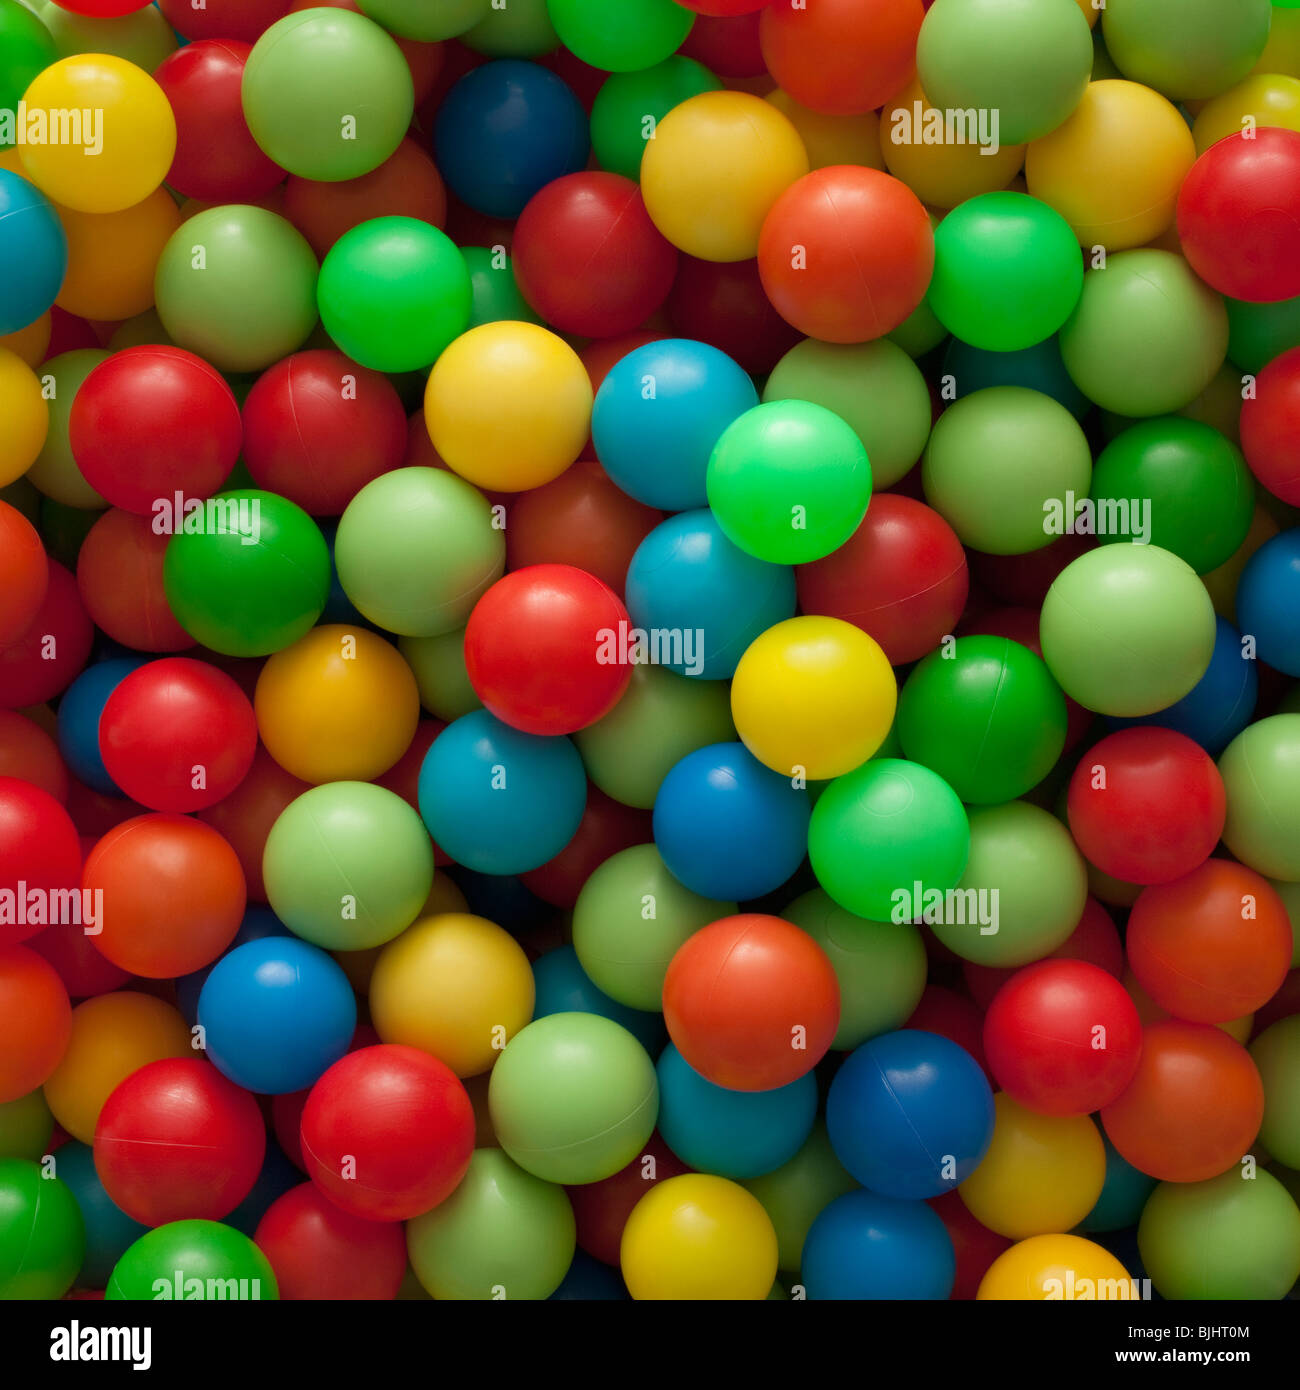 Colorful balls - Stock Image